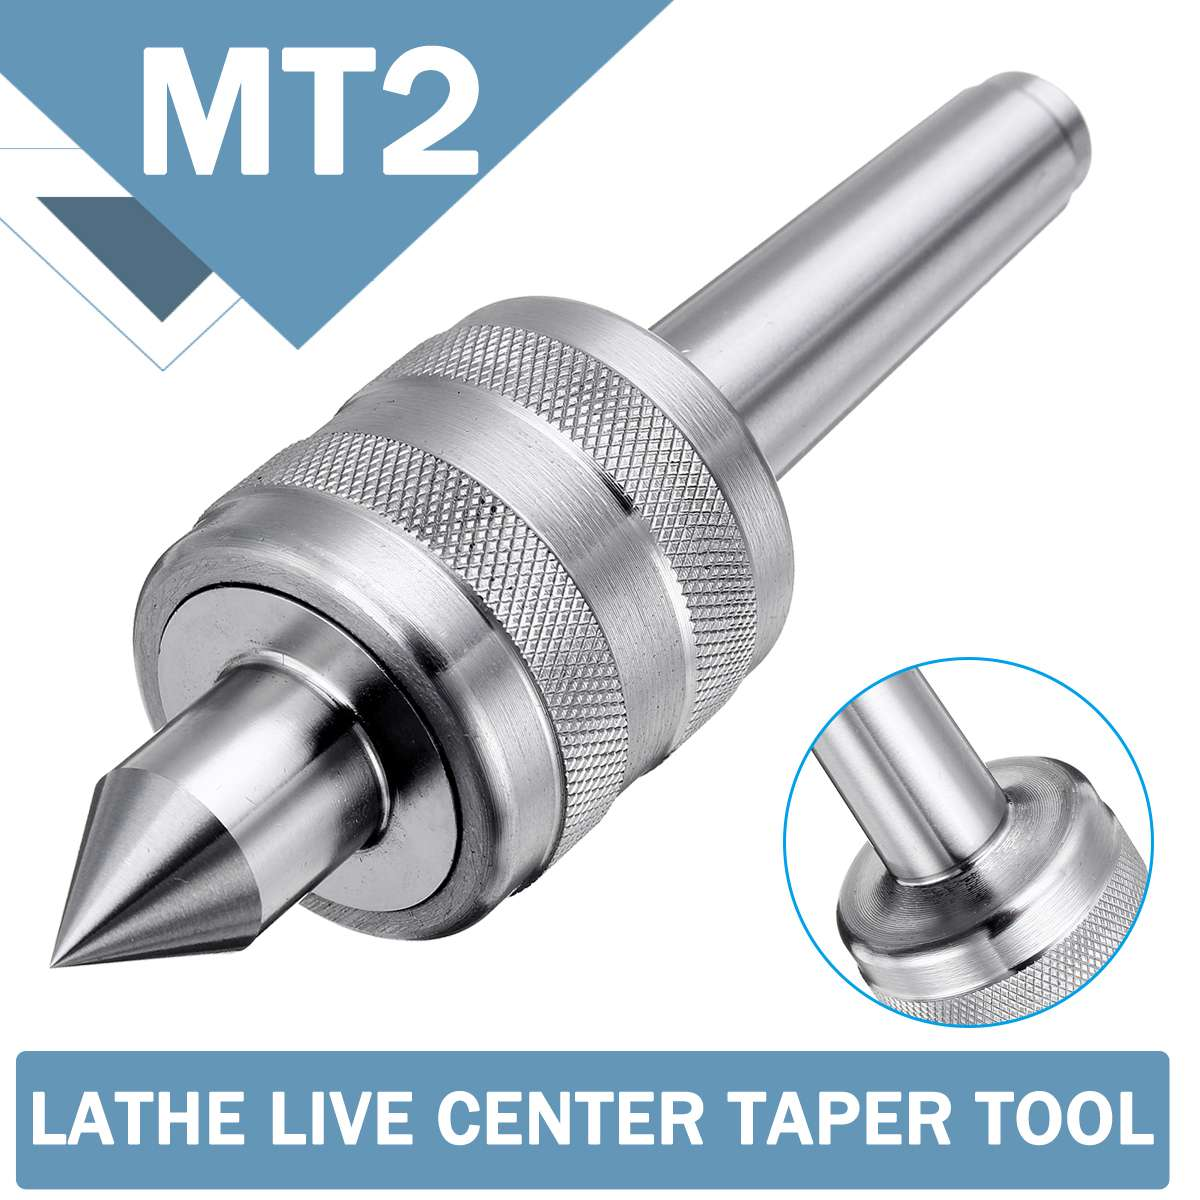 New Accuracy Steel Silver MT2 0.001 Lathe Live Center Taper Tool Live Revolving Milling Center Taper Machine Accessories